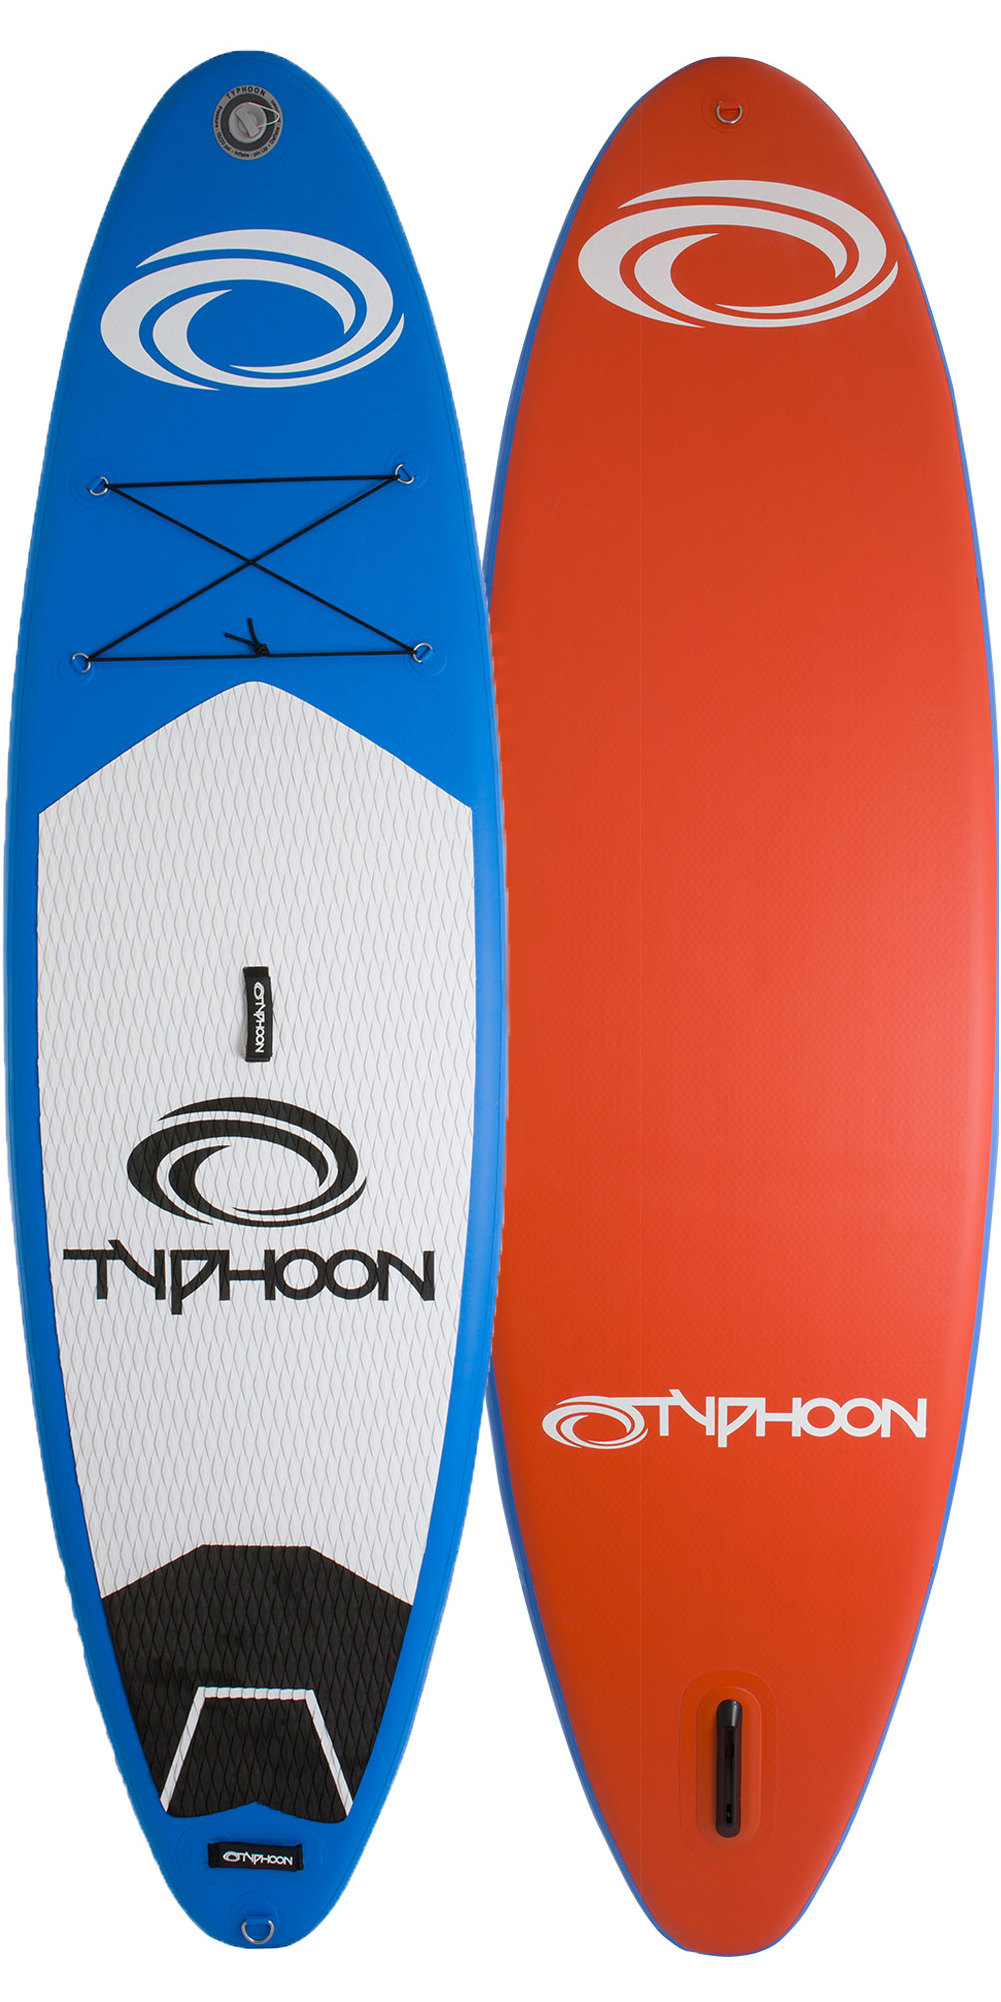 2019 Typhoon Inflatable SUP Package 10